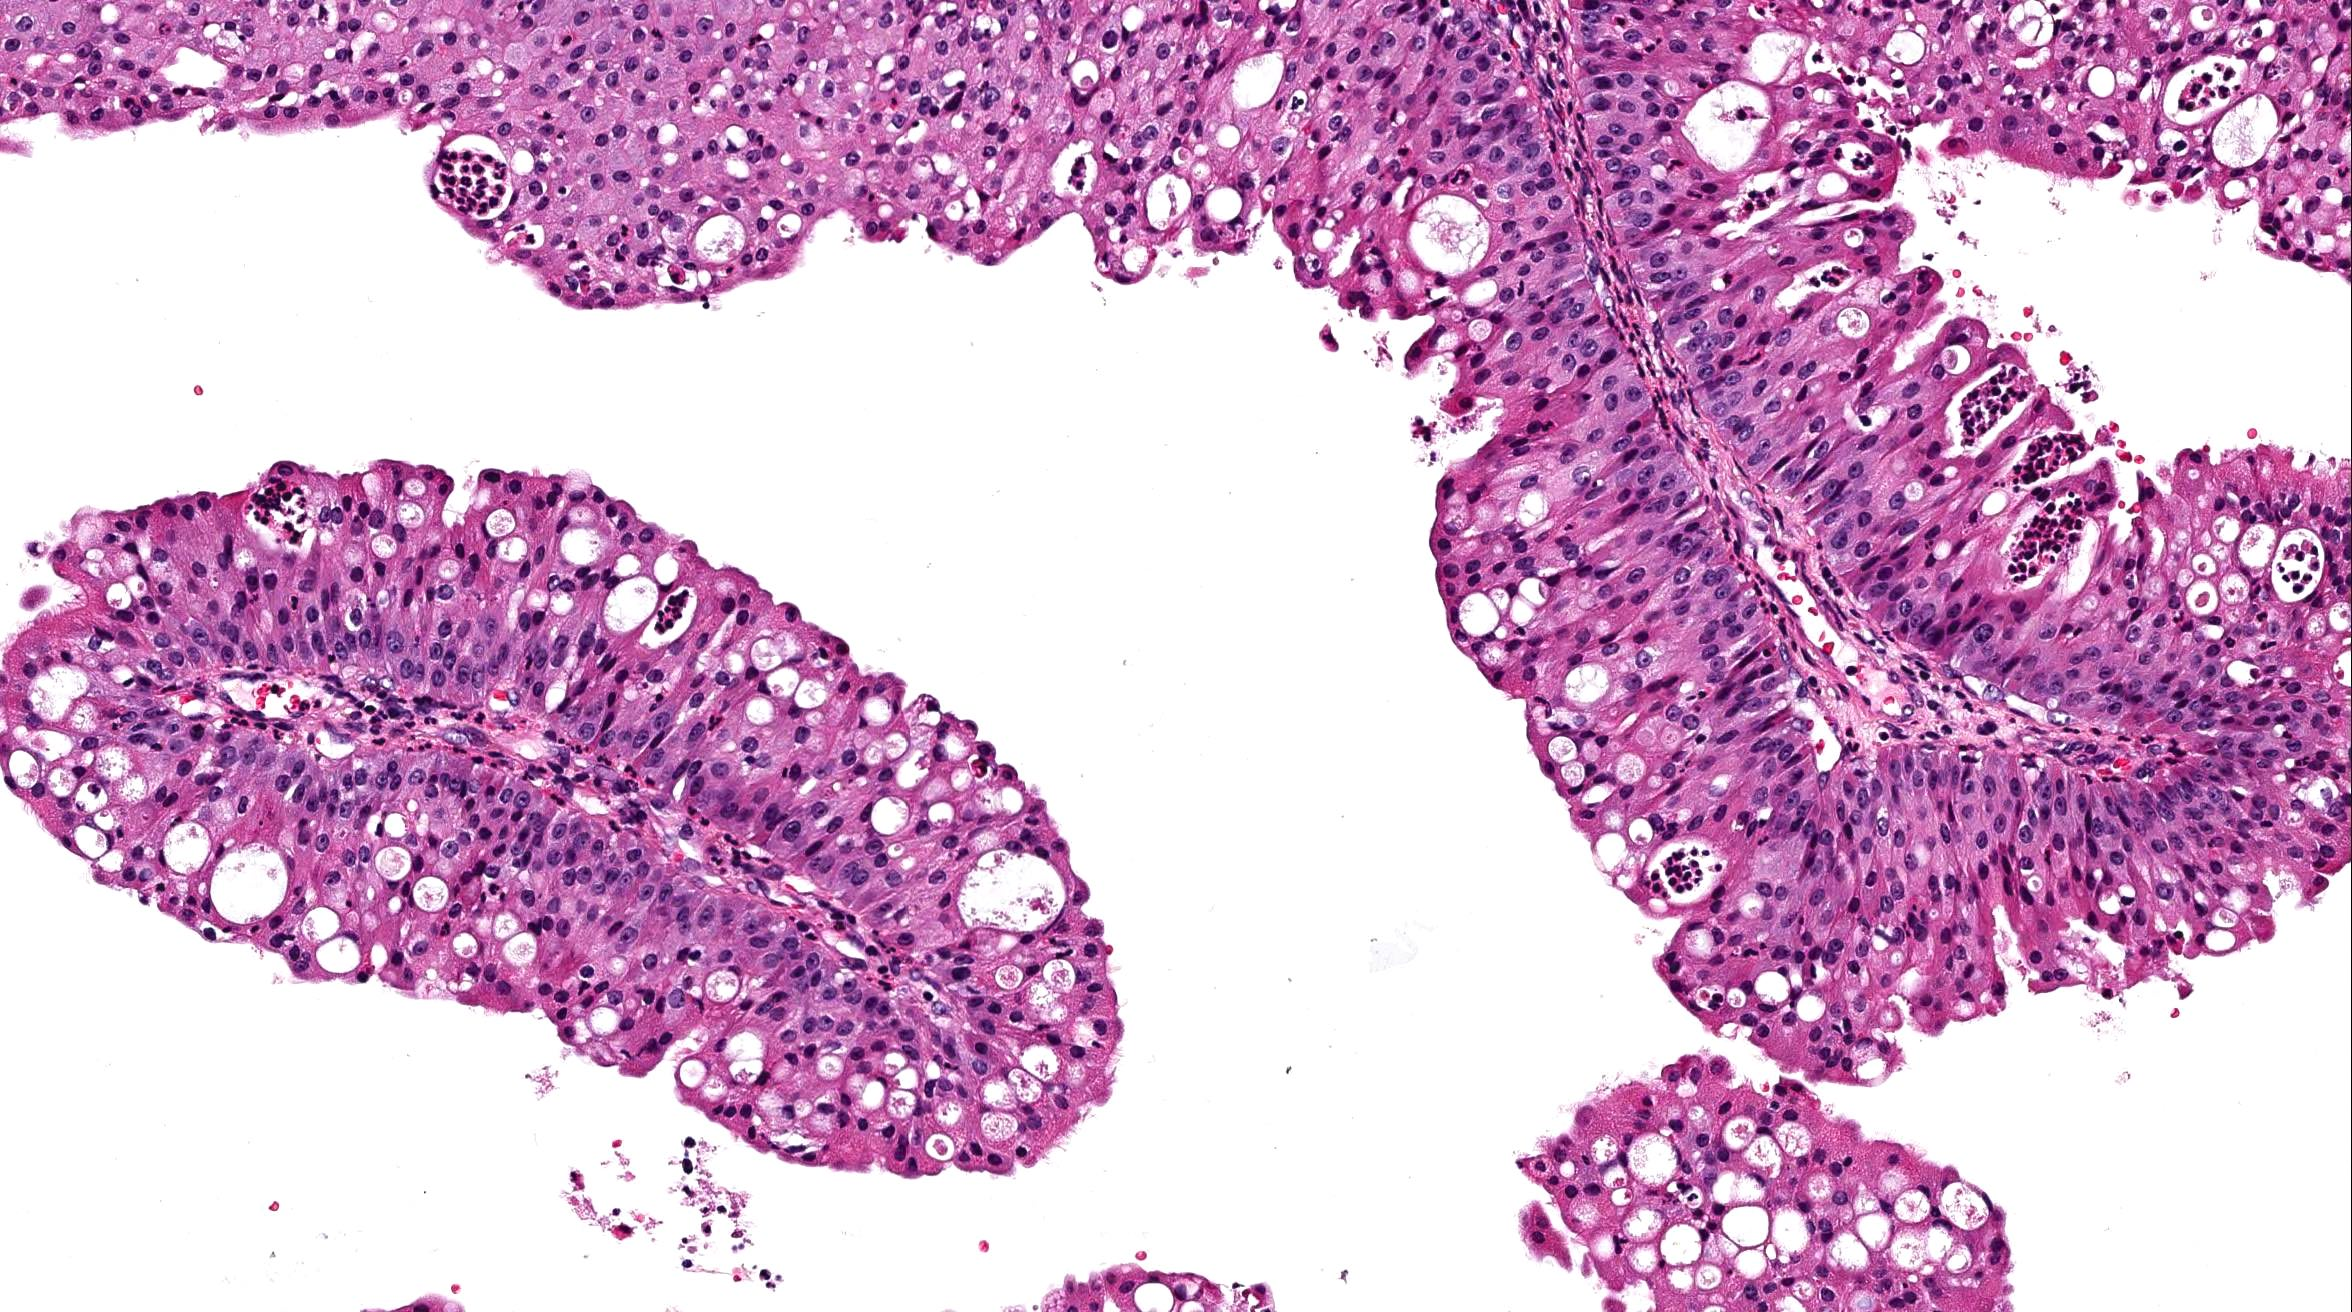 transitional cell papilloma nose aggressive cancer growth